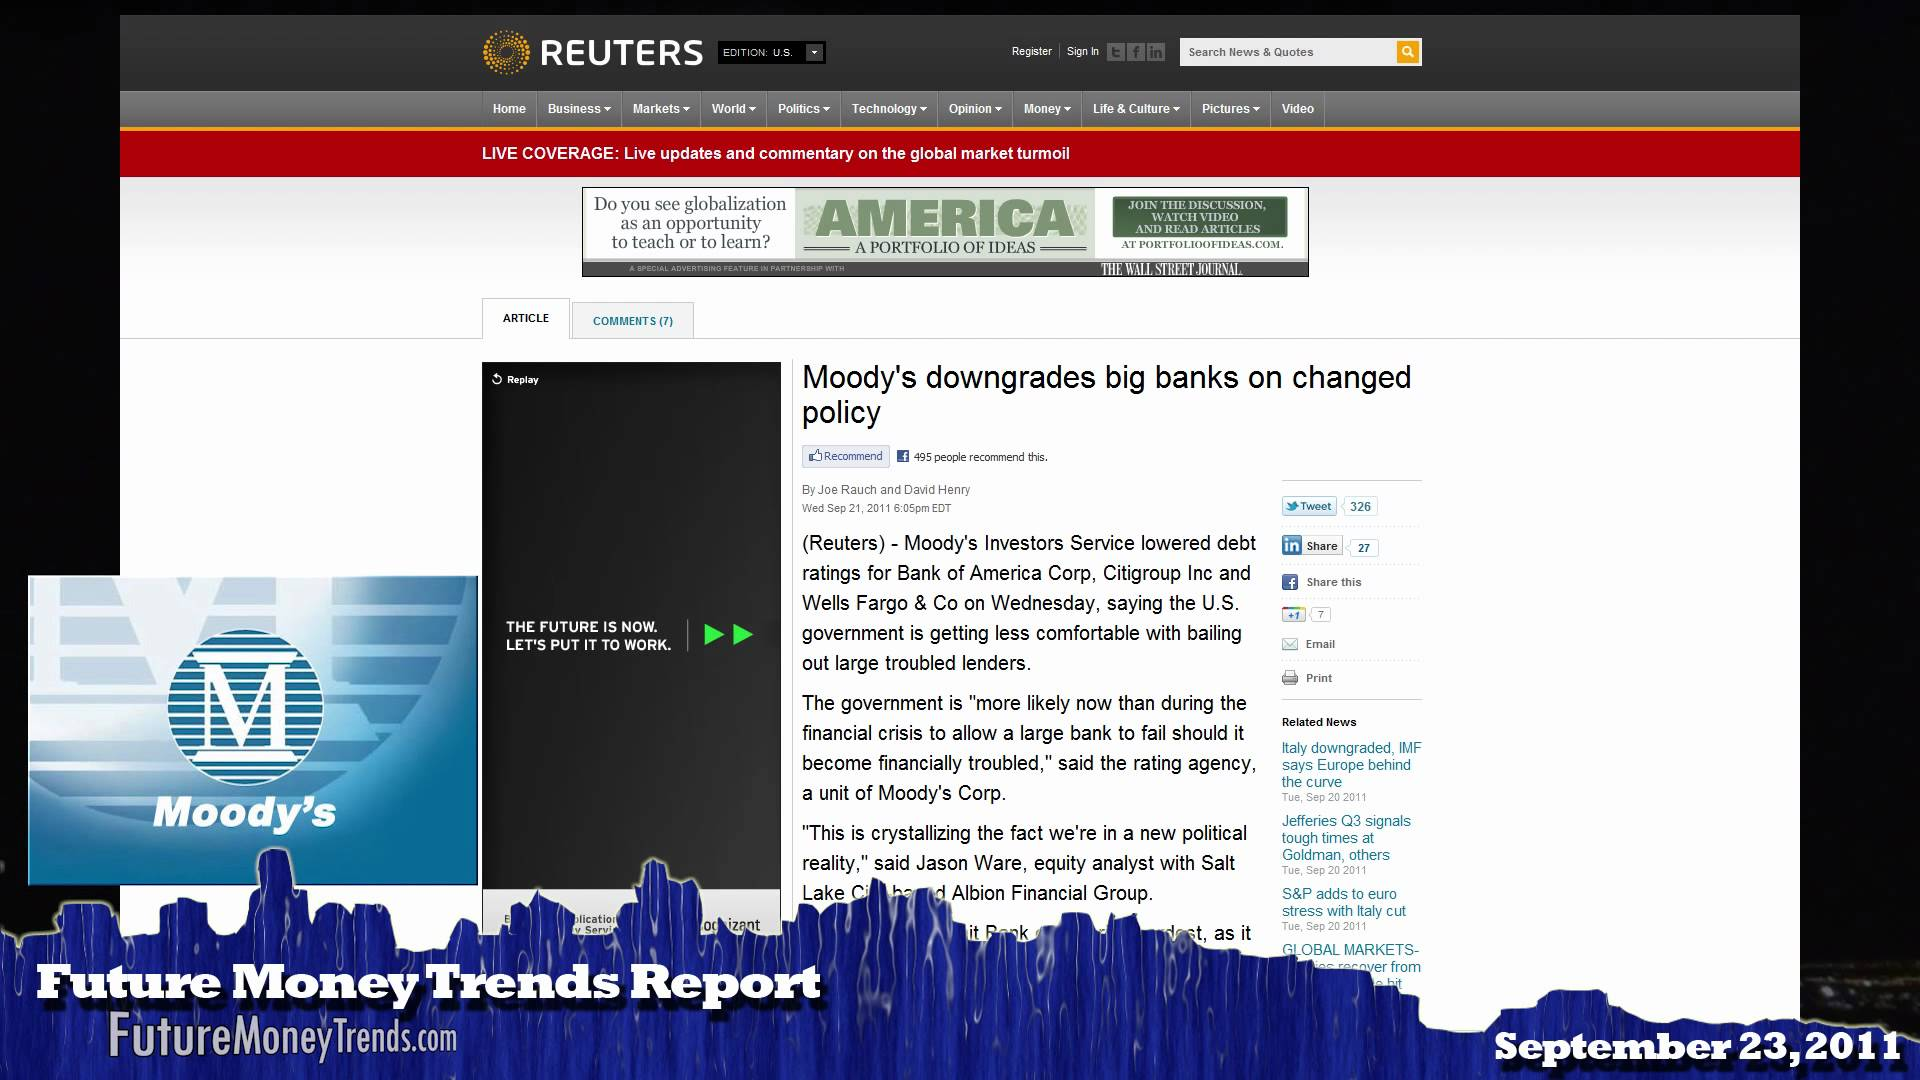 Future Money Trends Report Sep 23 2011 – Silver & Gold Plunge